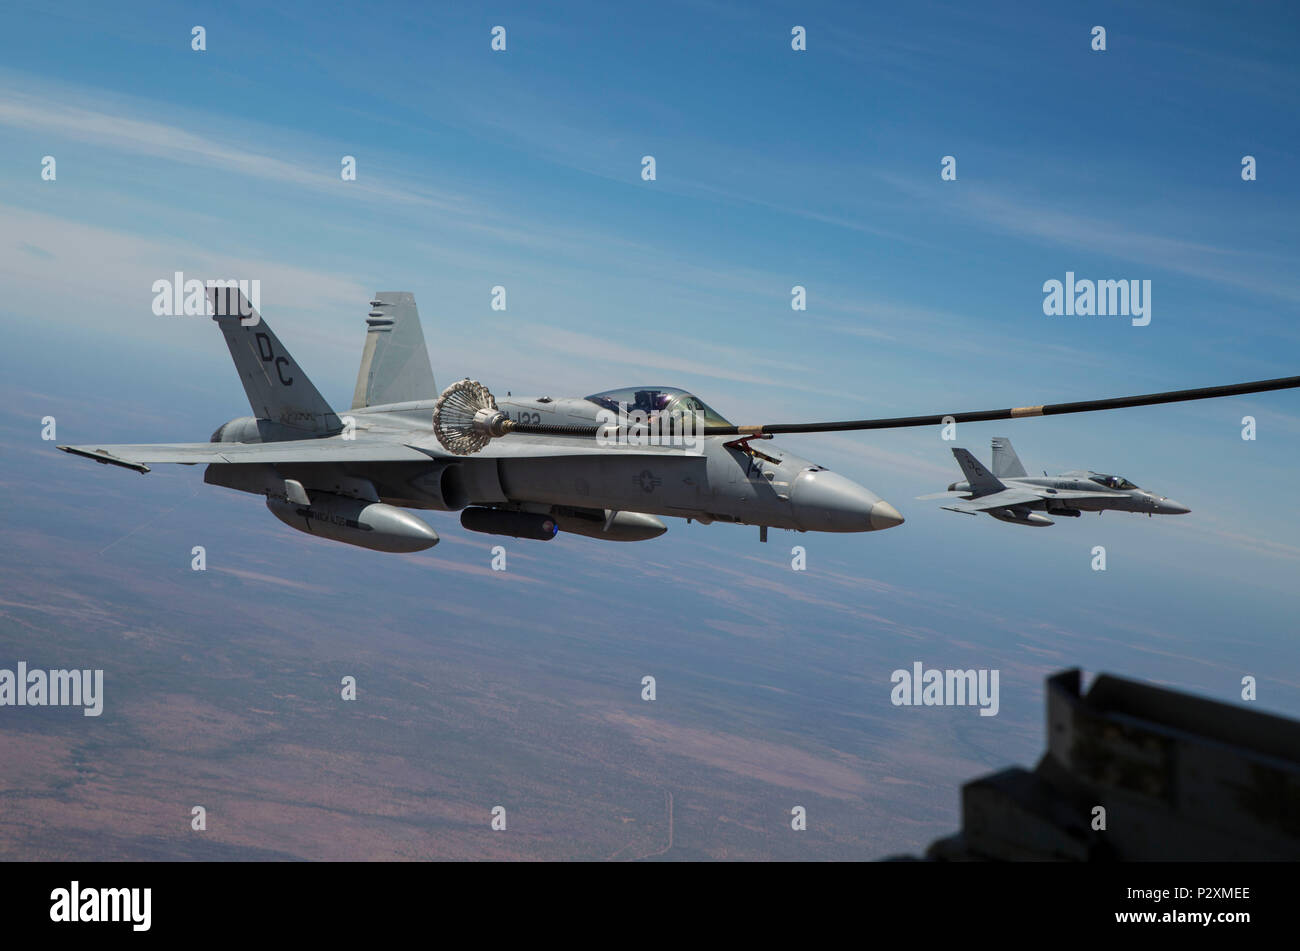 An F/A-18C Hornet with Marine Fighter Attack Squadron (VMFA) 122 moves in to catch the basket during an aerial refueling mission with Marine Aerial Refueler Transport Squadron (VMGR) 152 at Royal Australian Air Force Base Tindal, Australia during Exercise Pitch Black 2016, Aug. 9, 2016. VMGR-152 provides aerial refueling and assault support during expeditionary and joint or combined operations like Pitch Black. This exercise is a biennial, three week, multinational, large-force training exercise hosted by RAAF Tindal. (U.S. Marine Corps photo by Cpl. Nicole Zurbrugg) - Stock Image